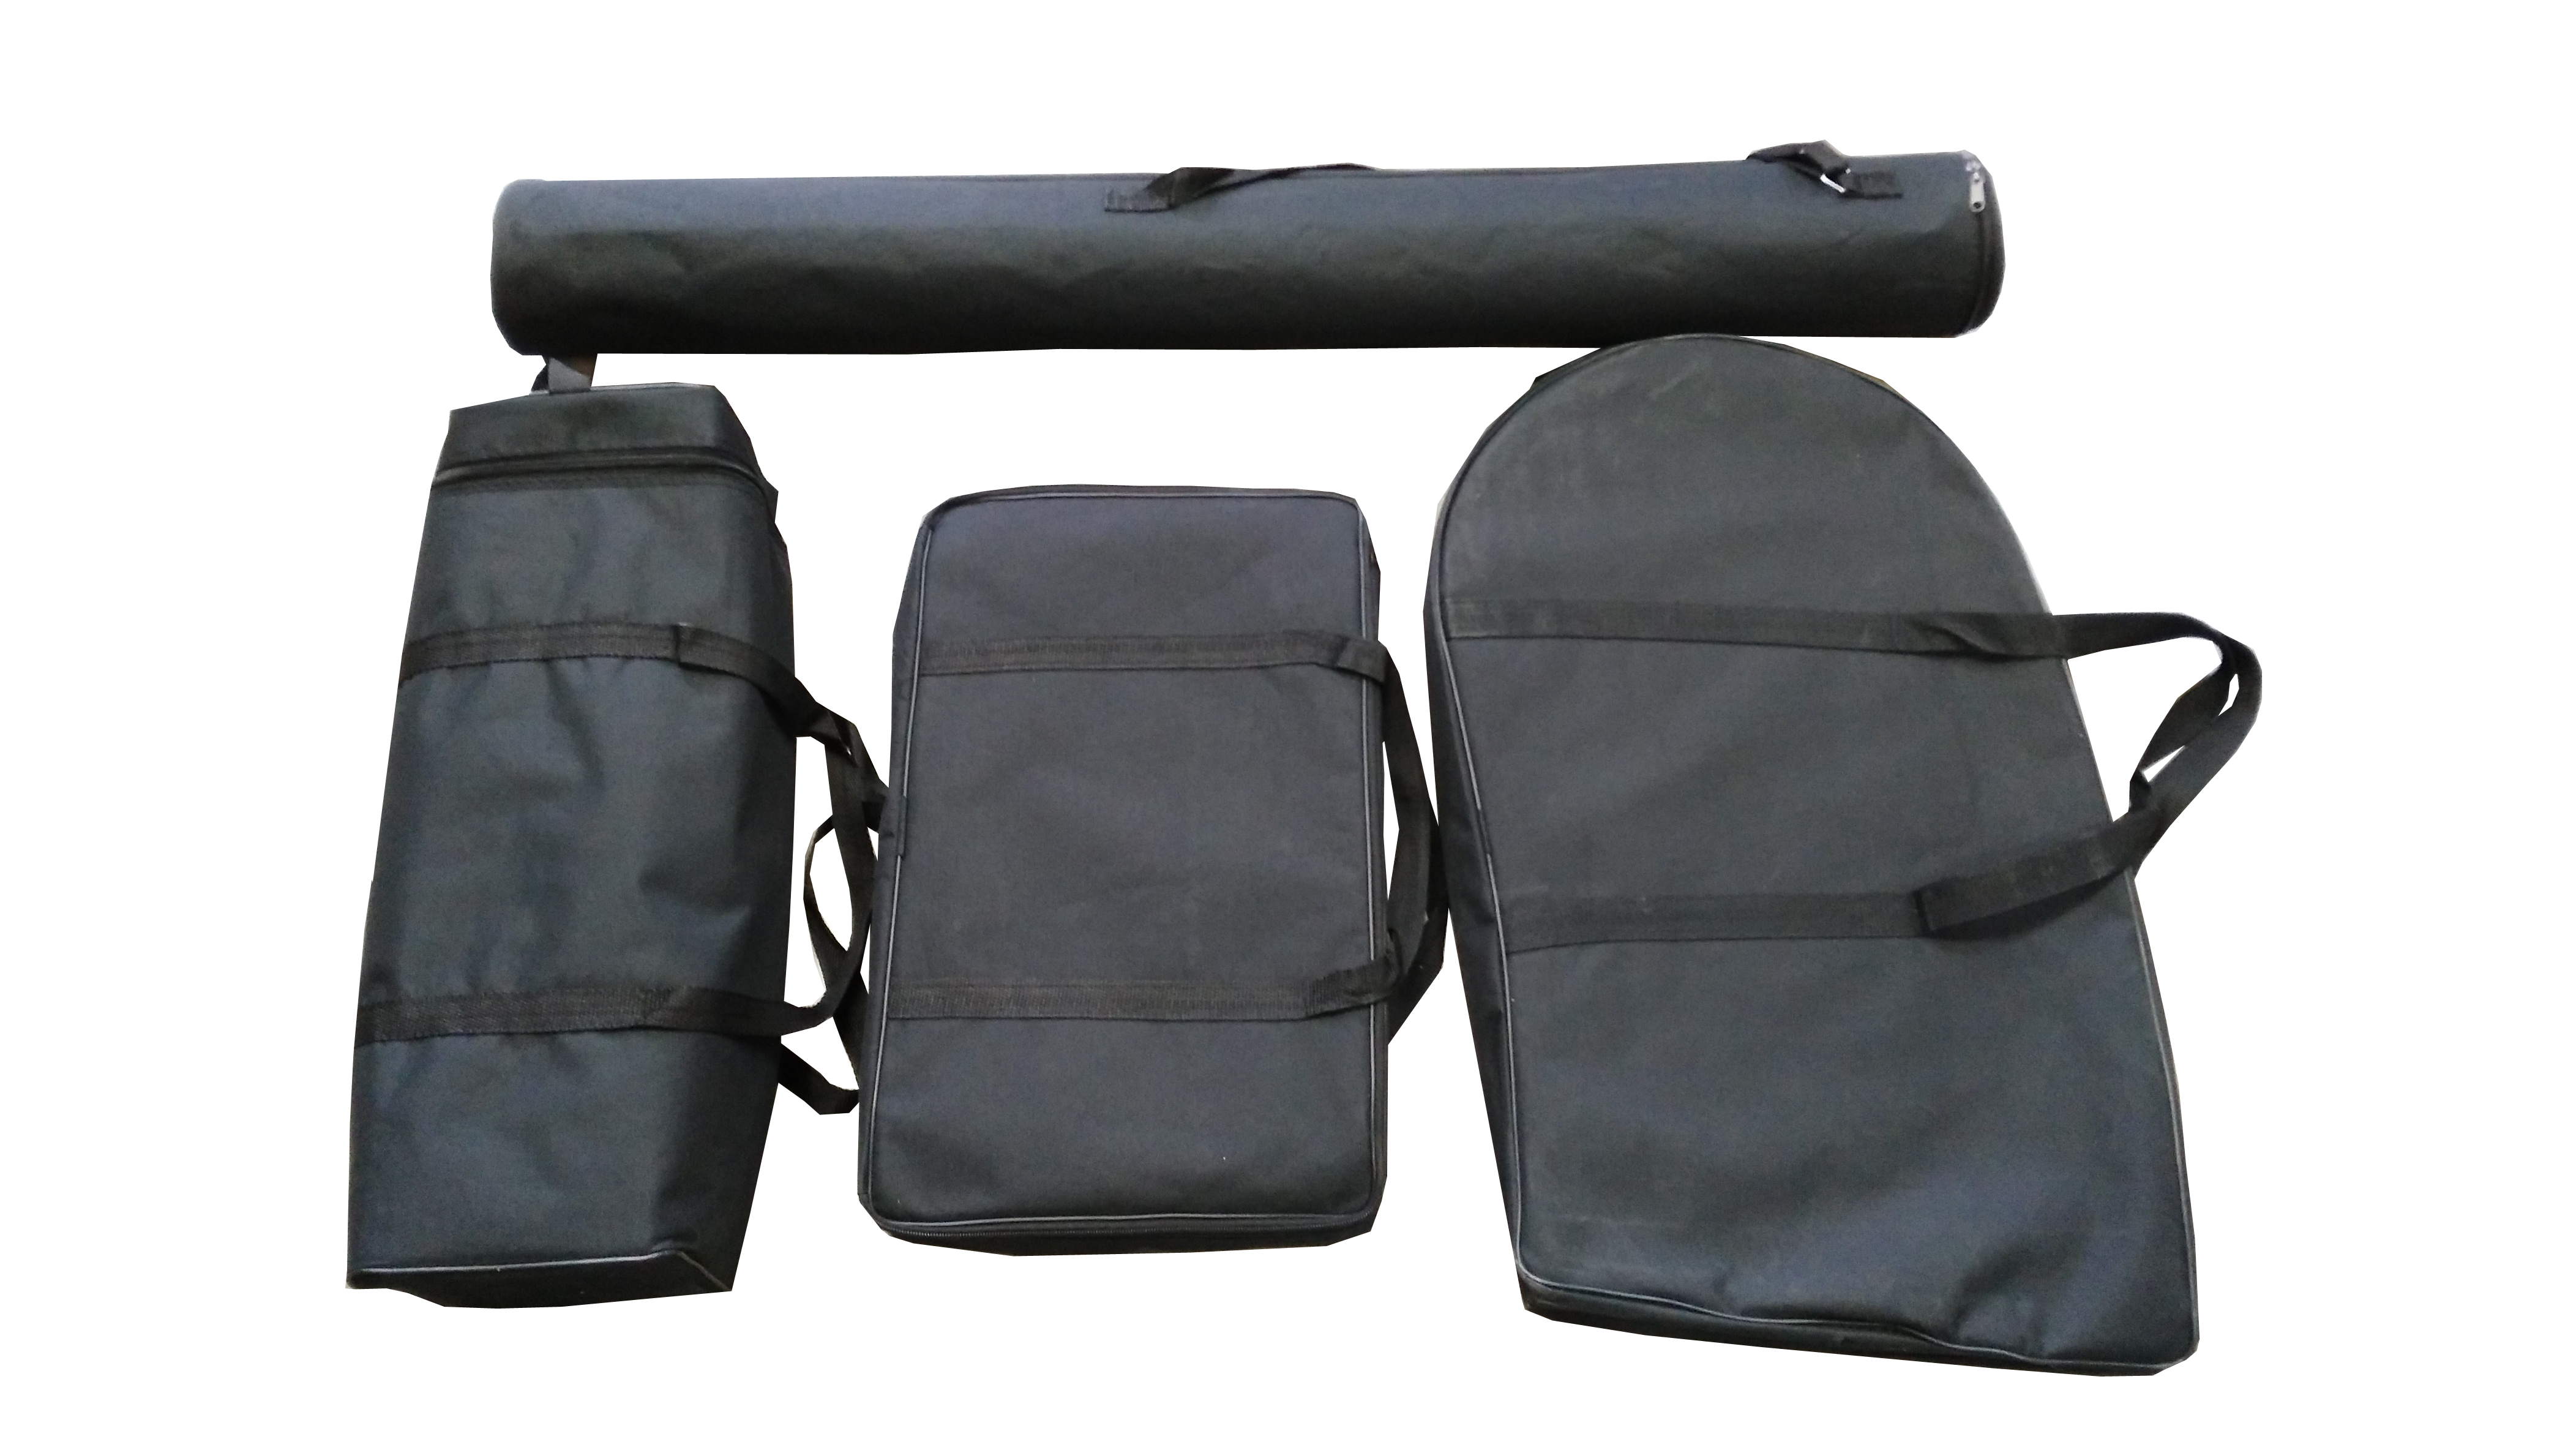 Standard nylon carry bags